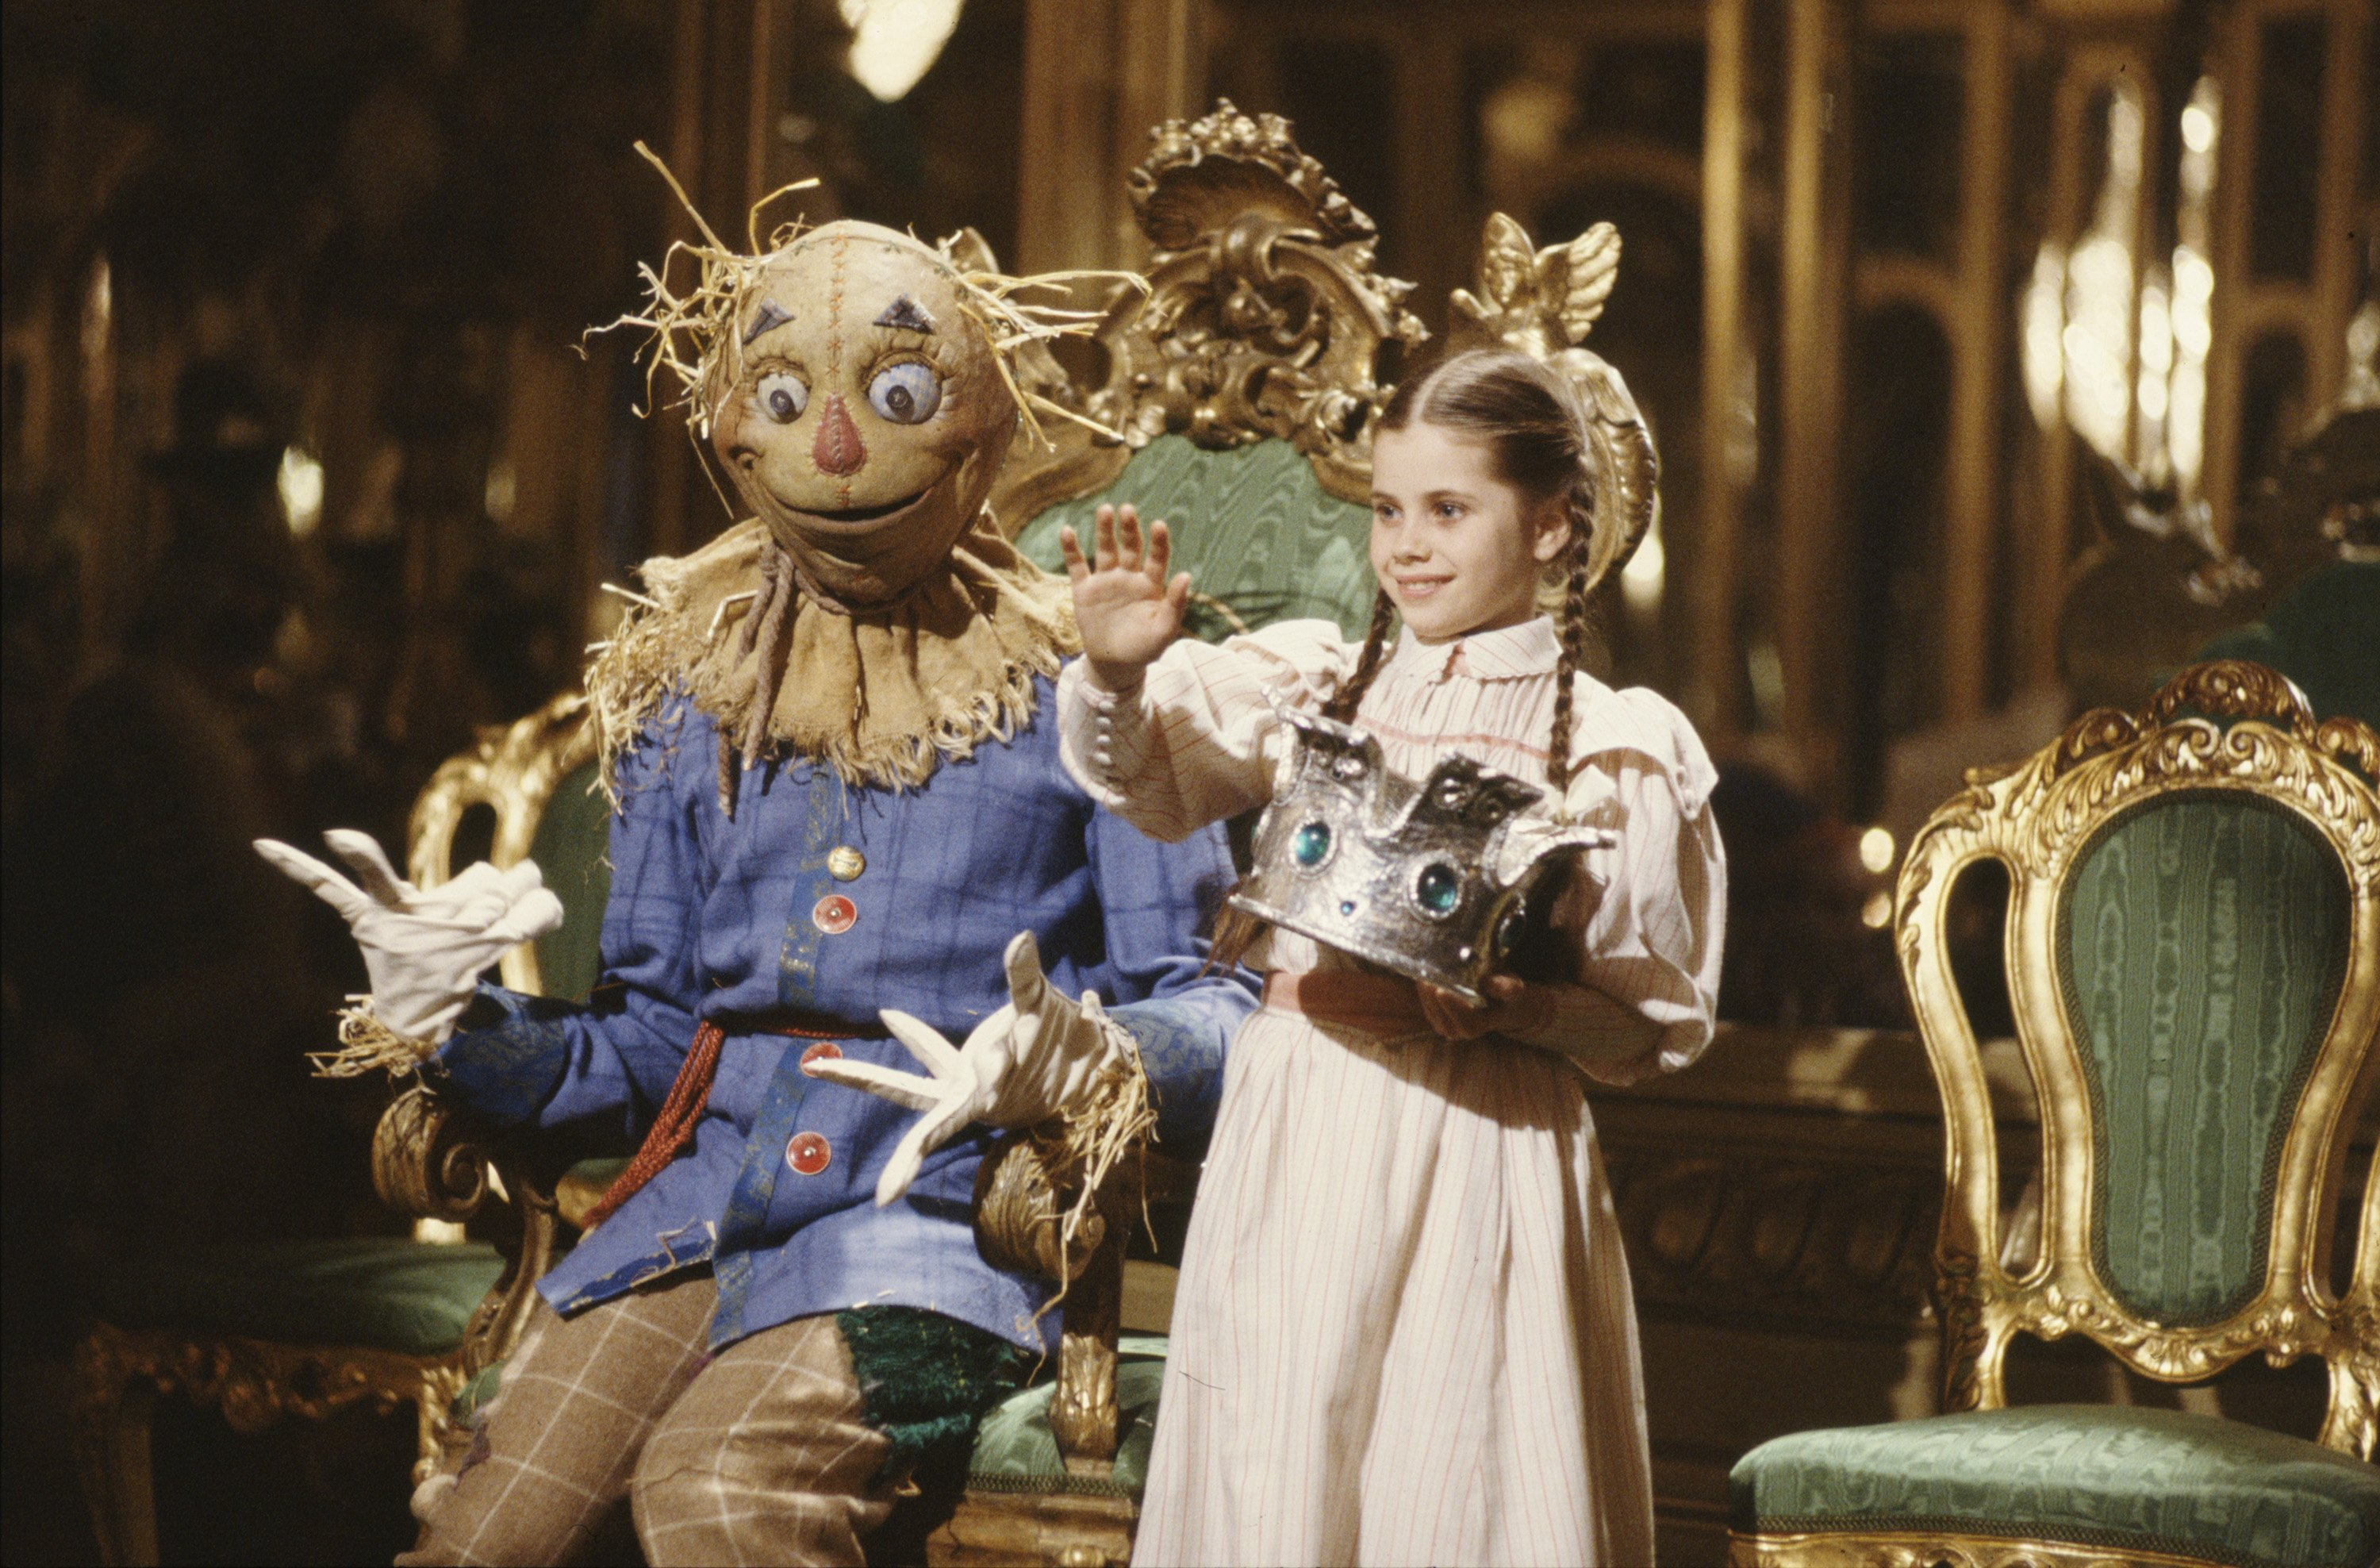 A scene from Return To Oz